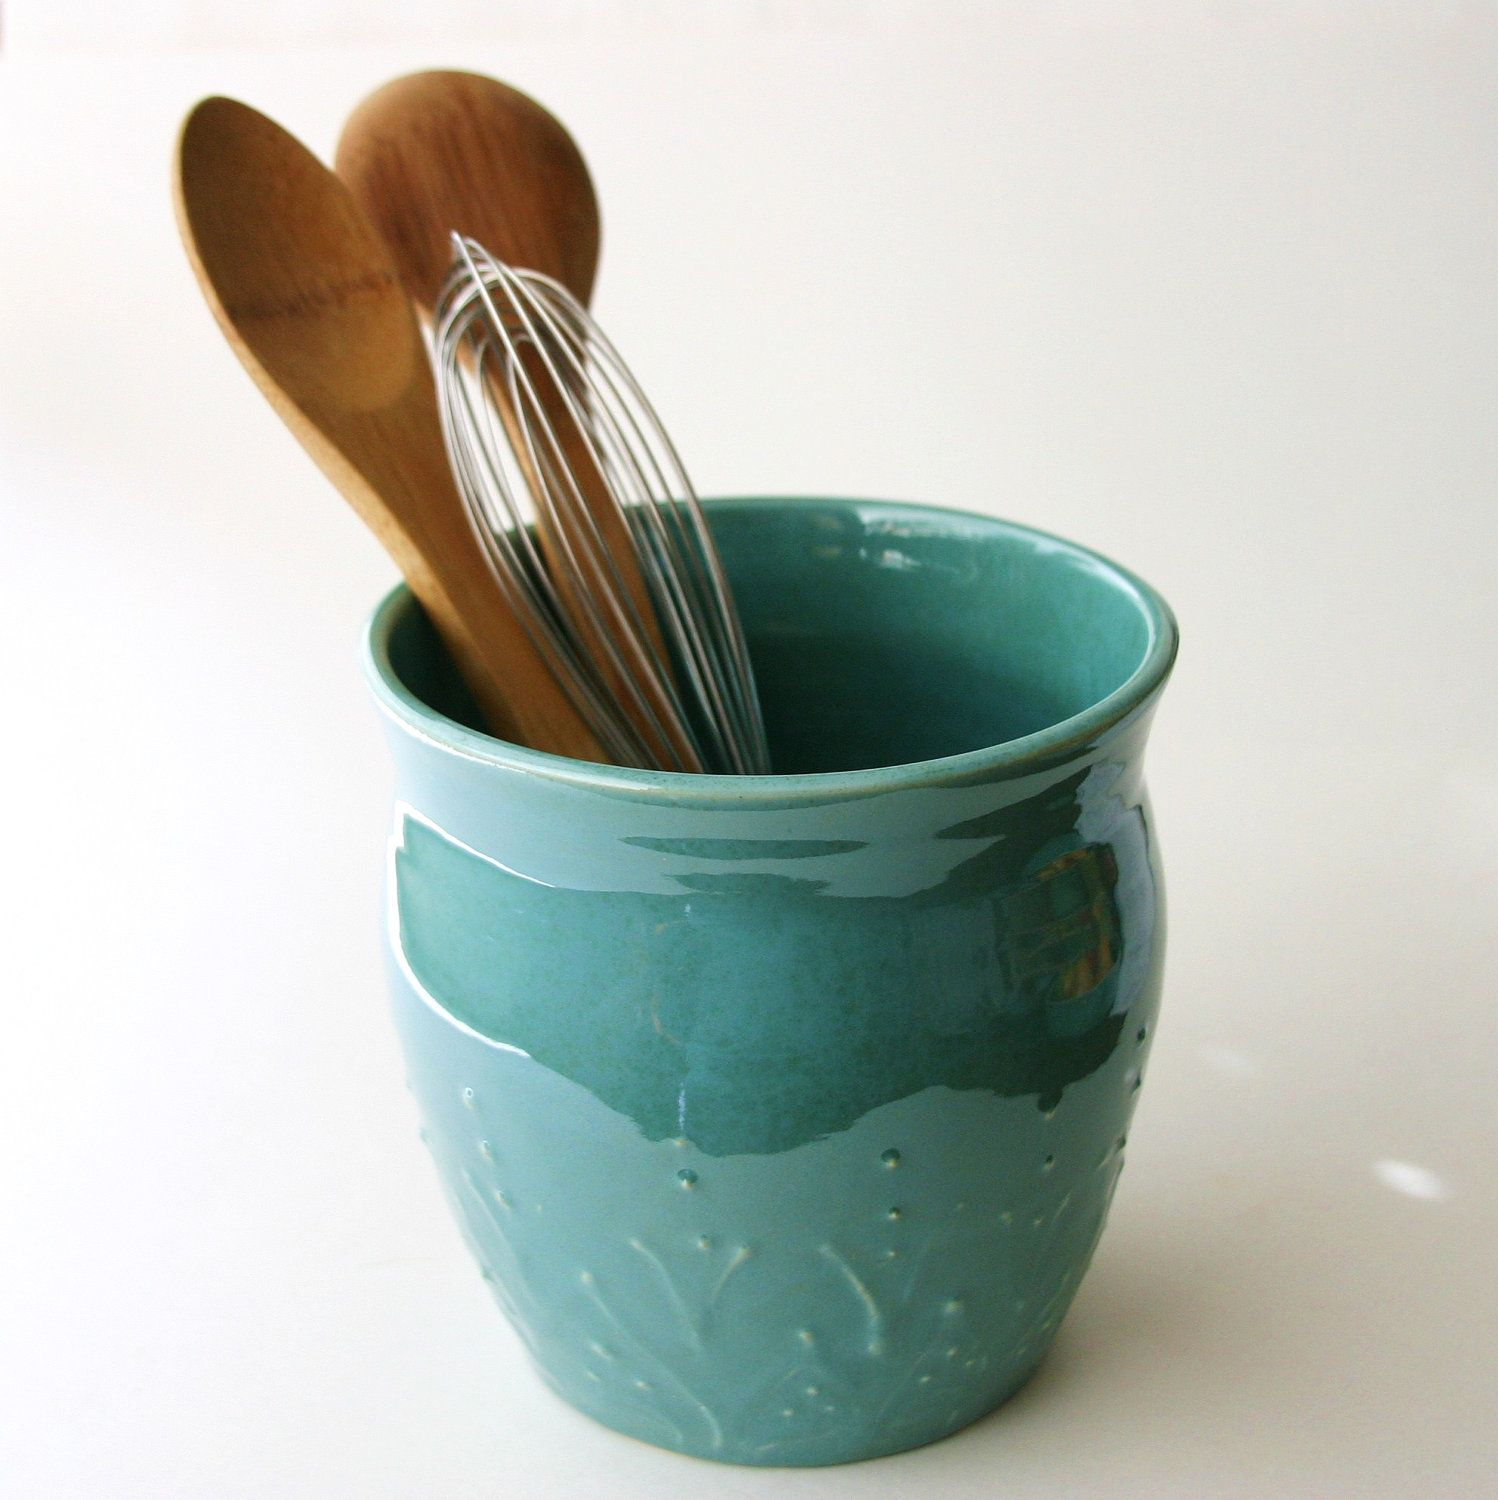 Extra Large Kitchen Utensil Holder - 16 Colors - Green, Blue, White ...